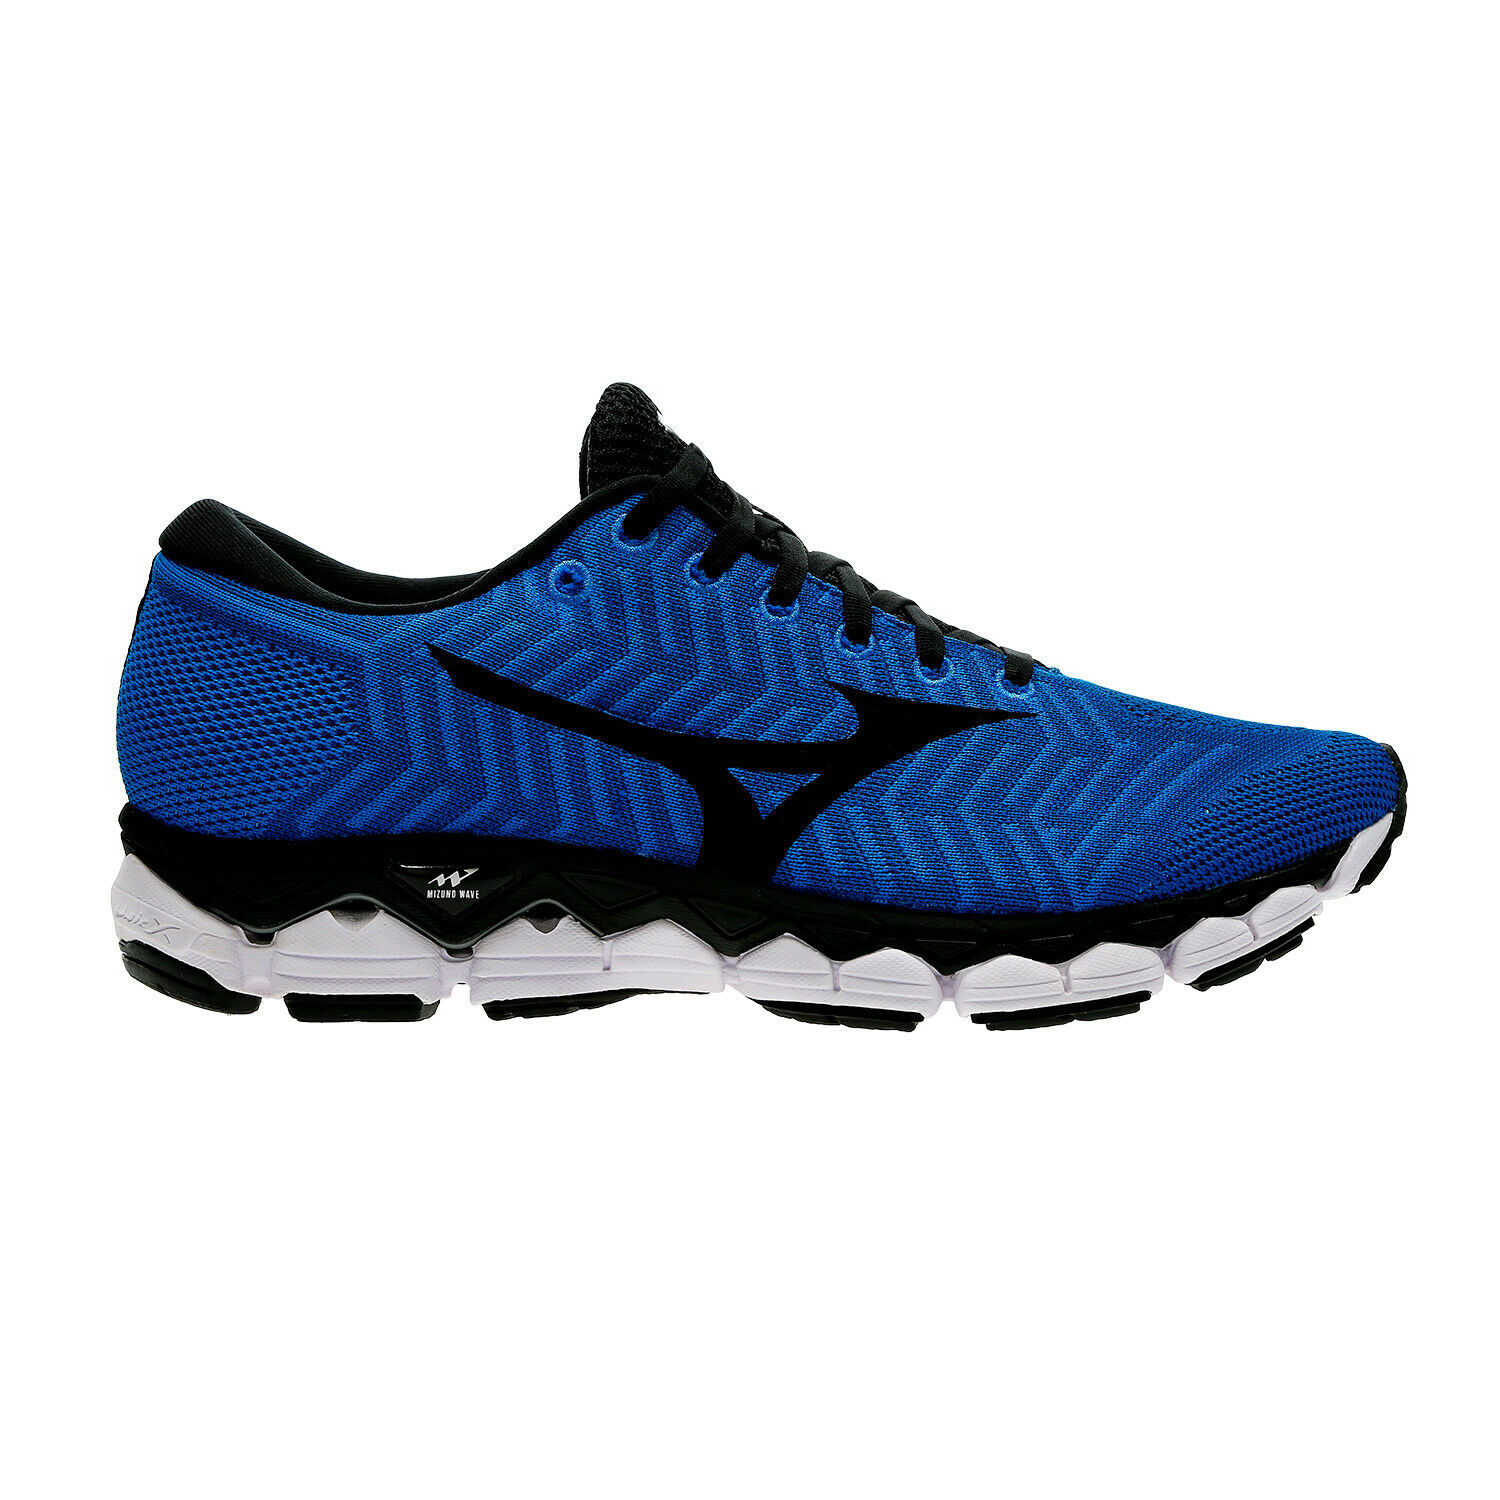 mens mizuno running shoes size 9.5 inches talles